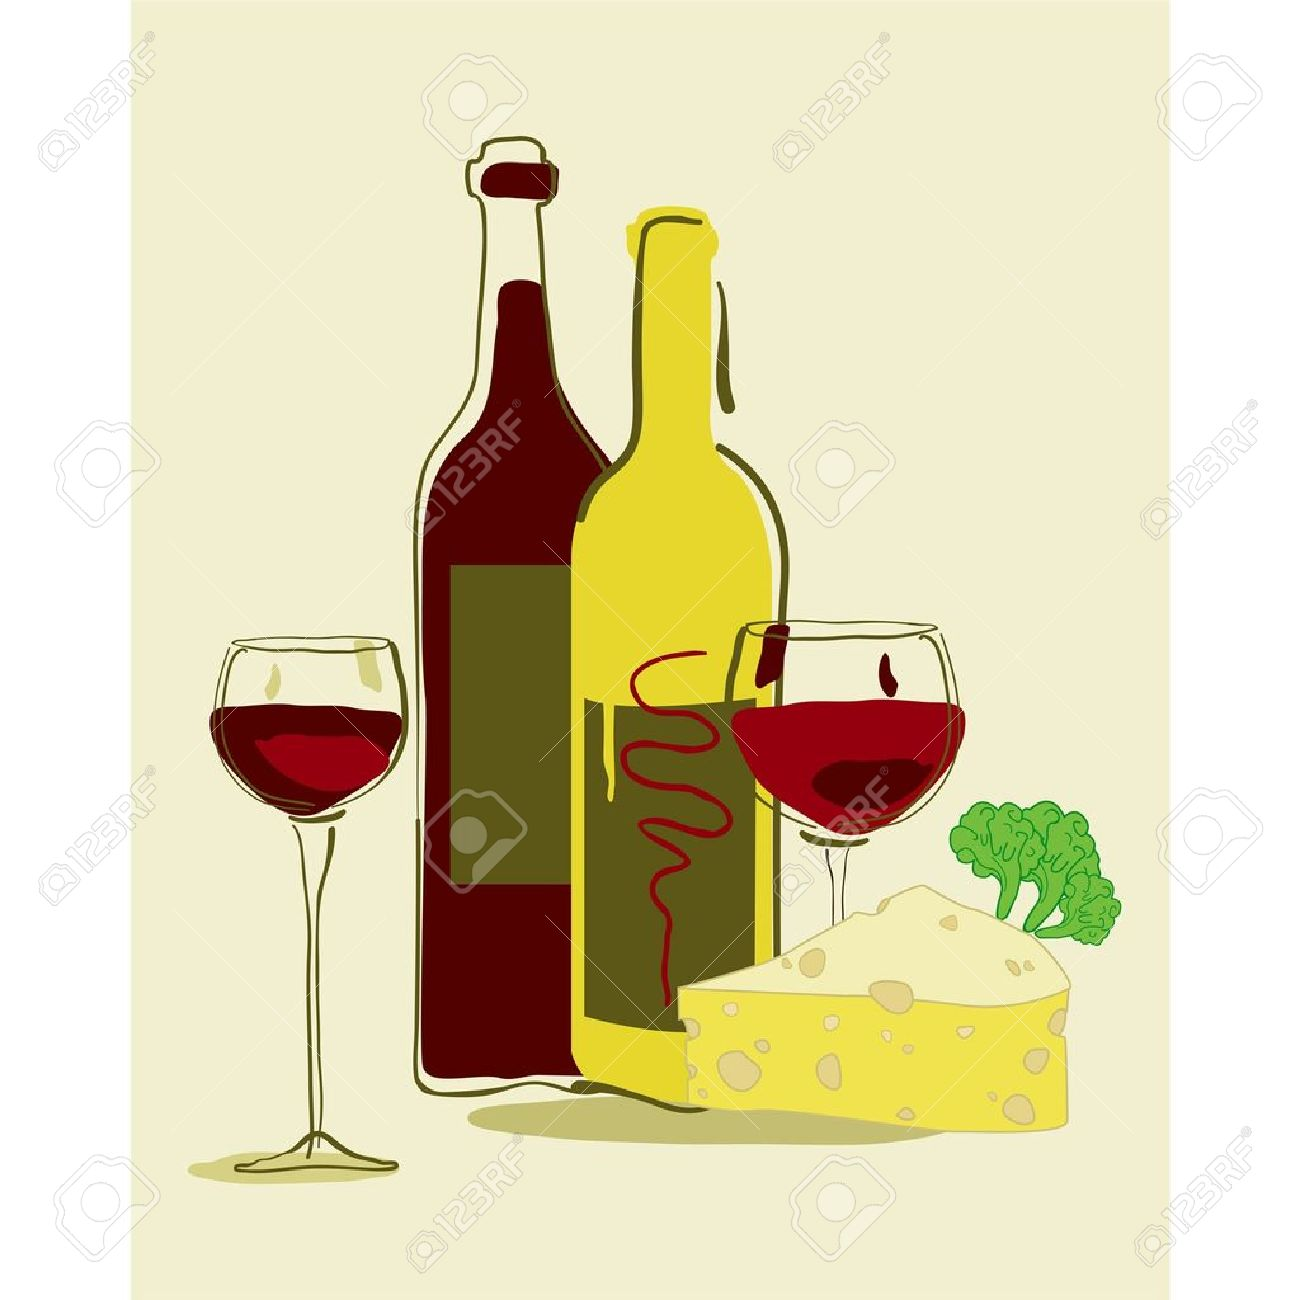 Wine And Cheese: Red Wine And .-wine and cheese: Red wine and .-13